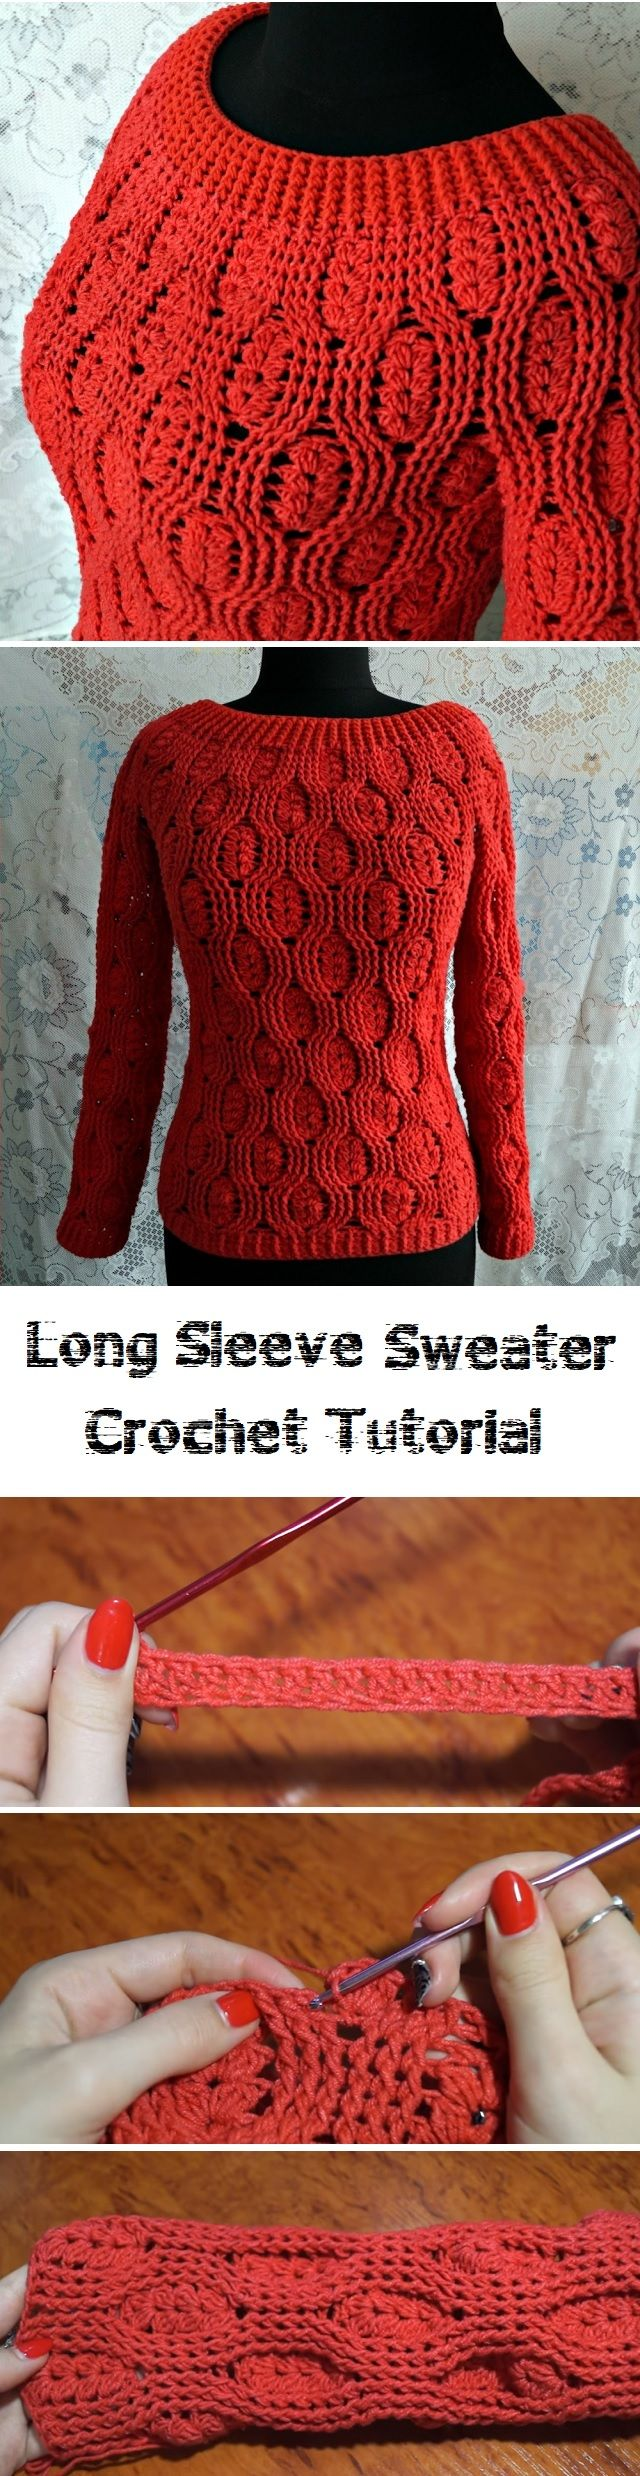 Crochet Long Sleeve Sweater